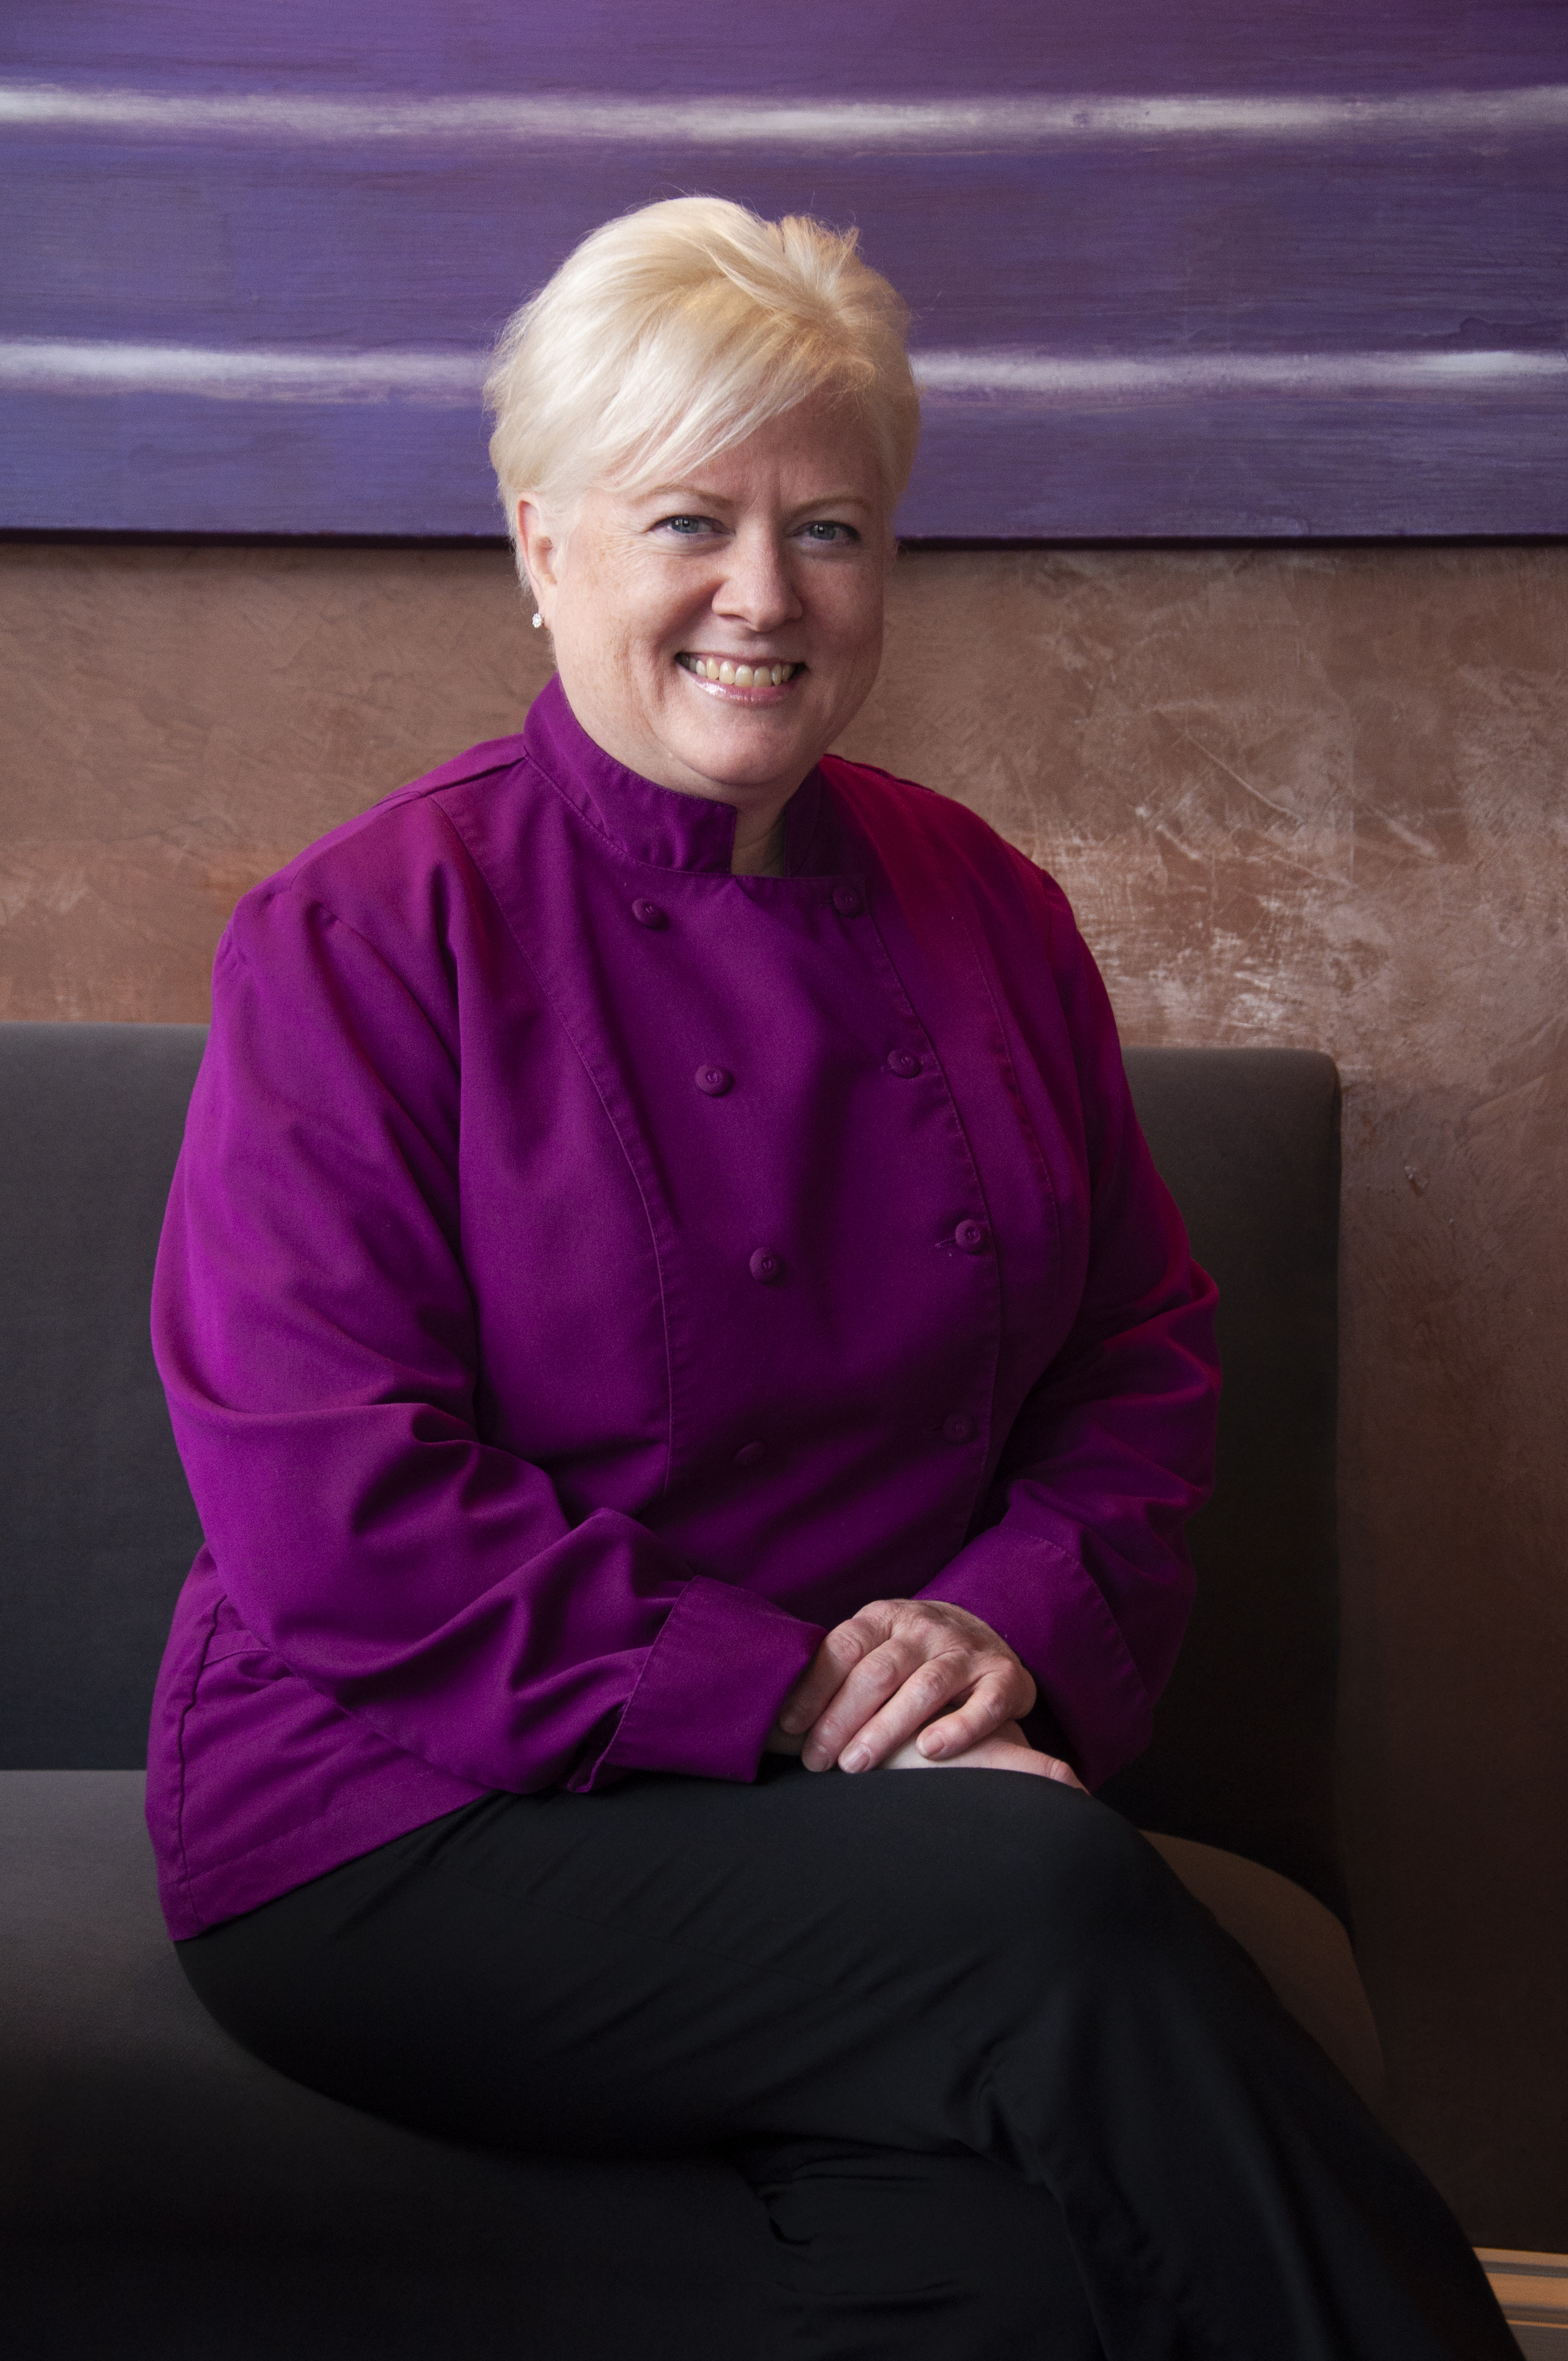 Chef Cindy Wolf in purple chef's jacket seated with legs crossed and hands in lap